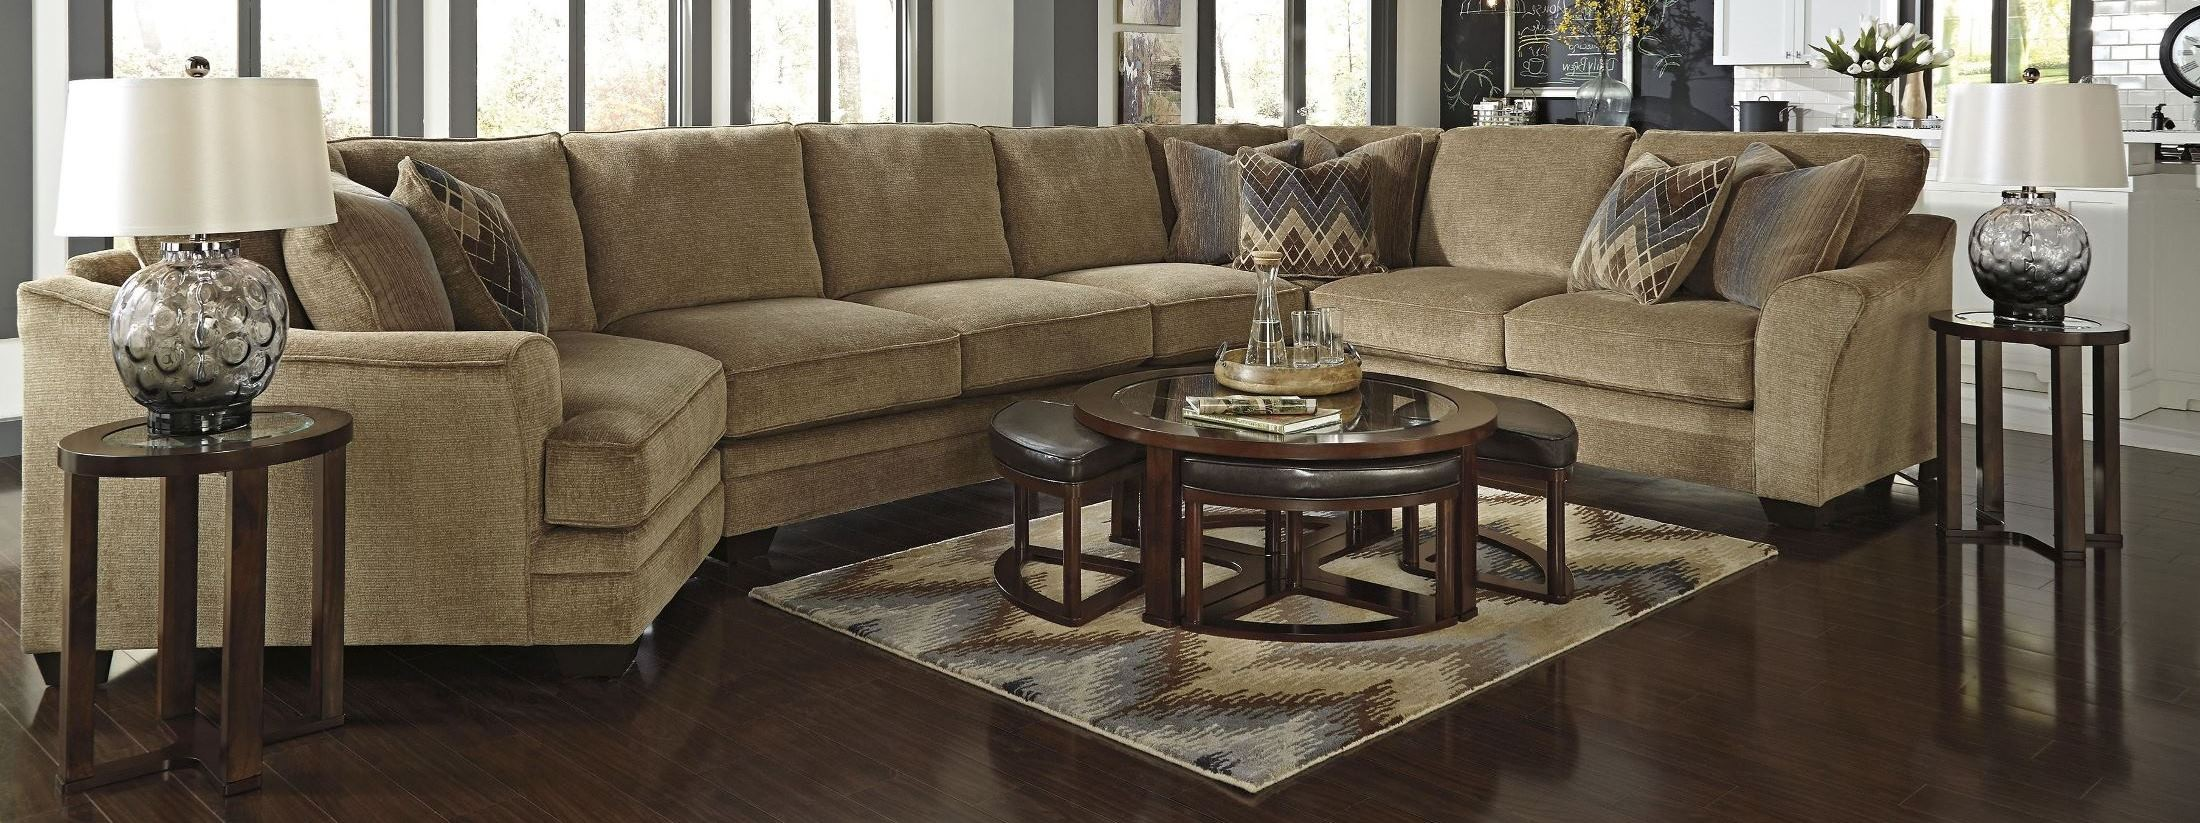 Lonsdale LAF Large Cuddler Sectional from Ashley (92111-16 ...